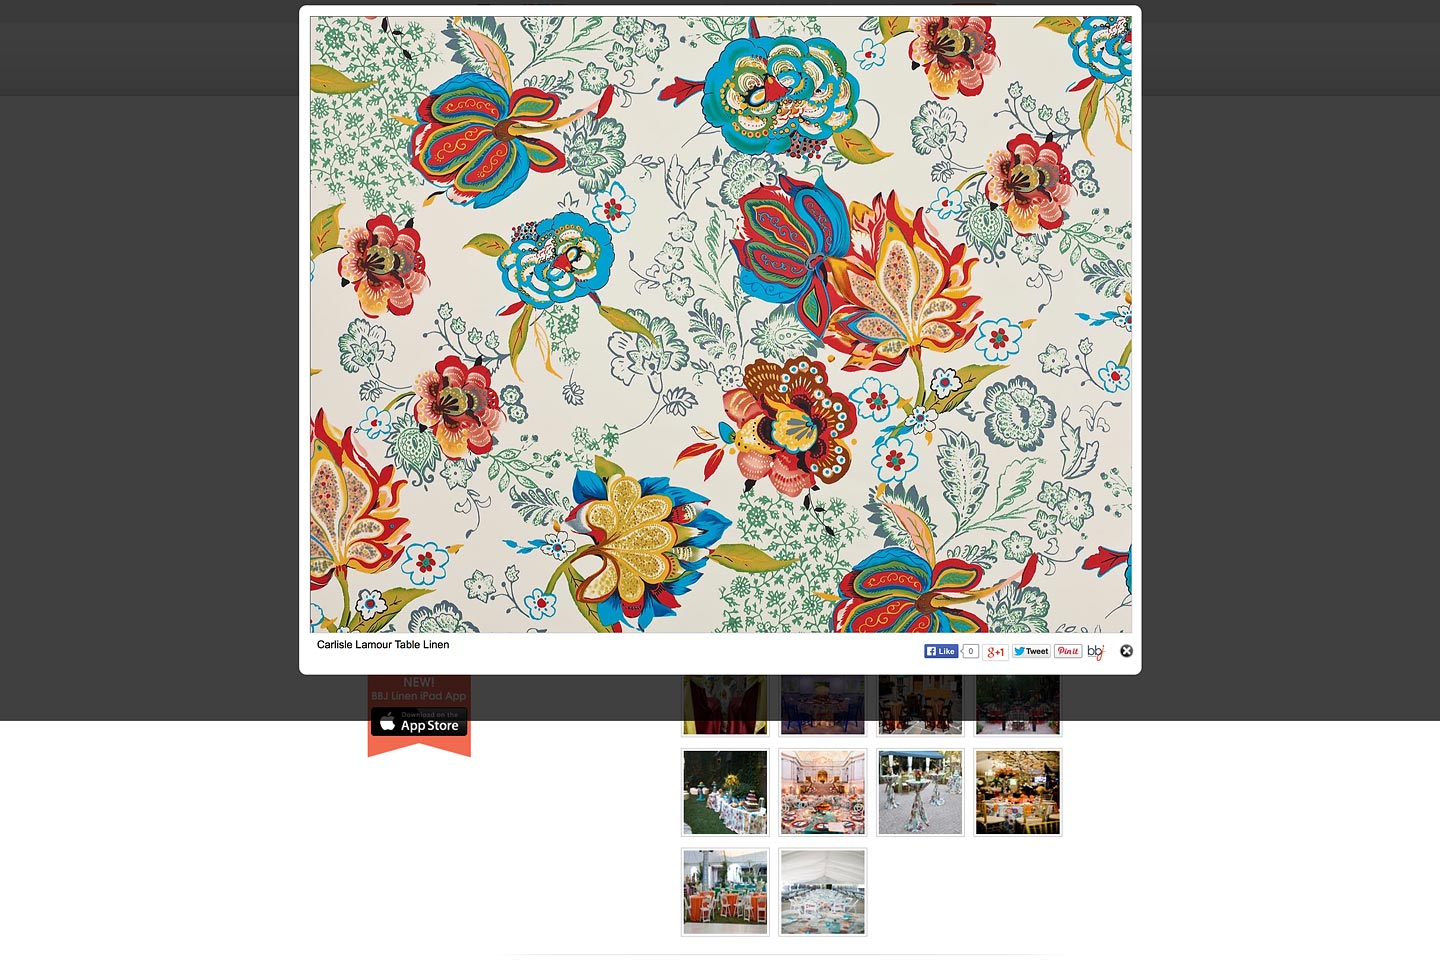 a screen capture of a giant enlargement of the carlisle lamour table linen swatch on the bbjlinen.com website